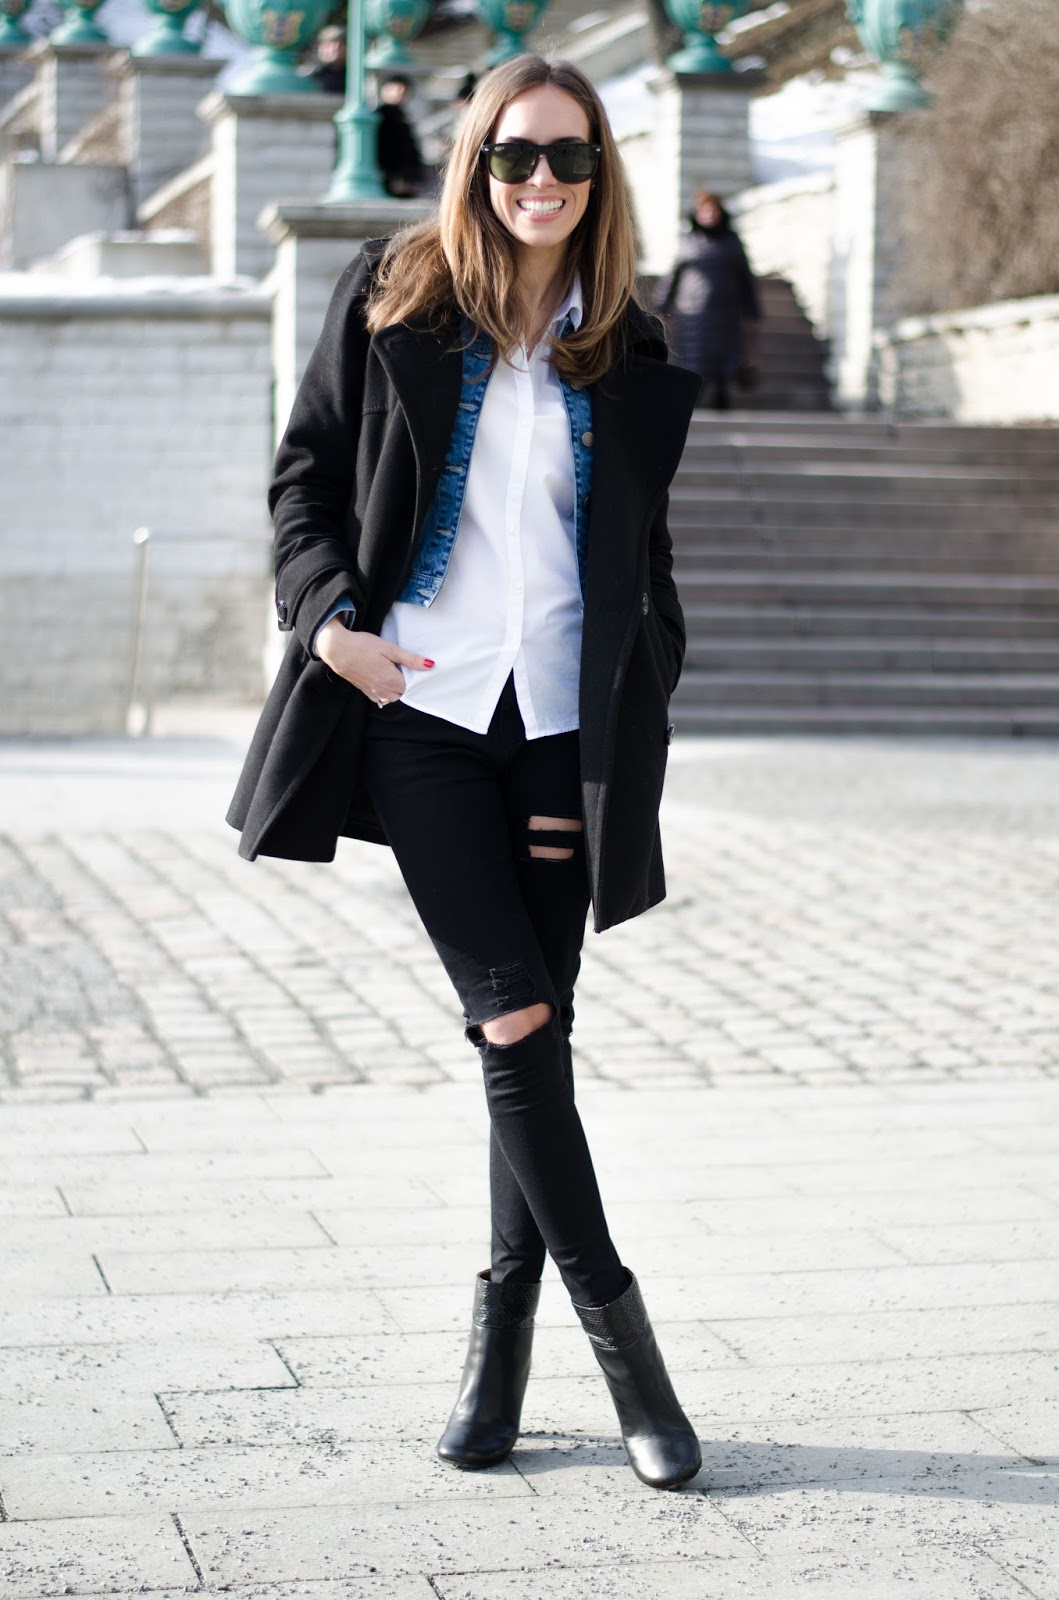 kristjaana mere black coat white shirt black ripped jeans winter outfit